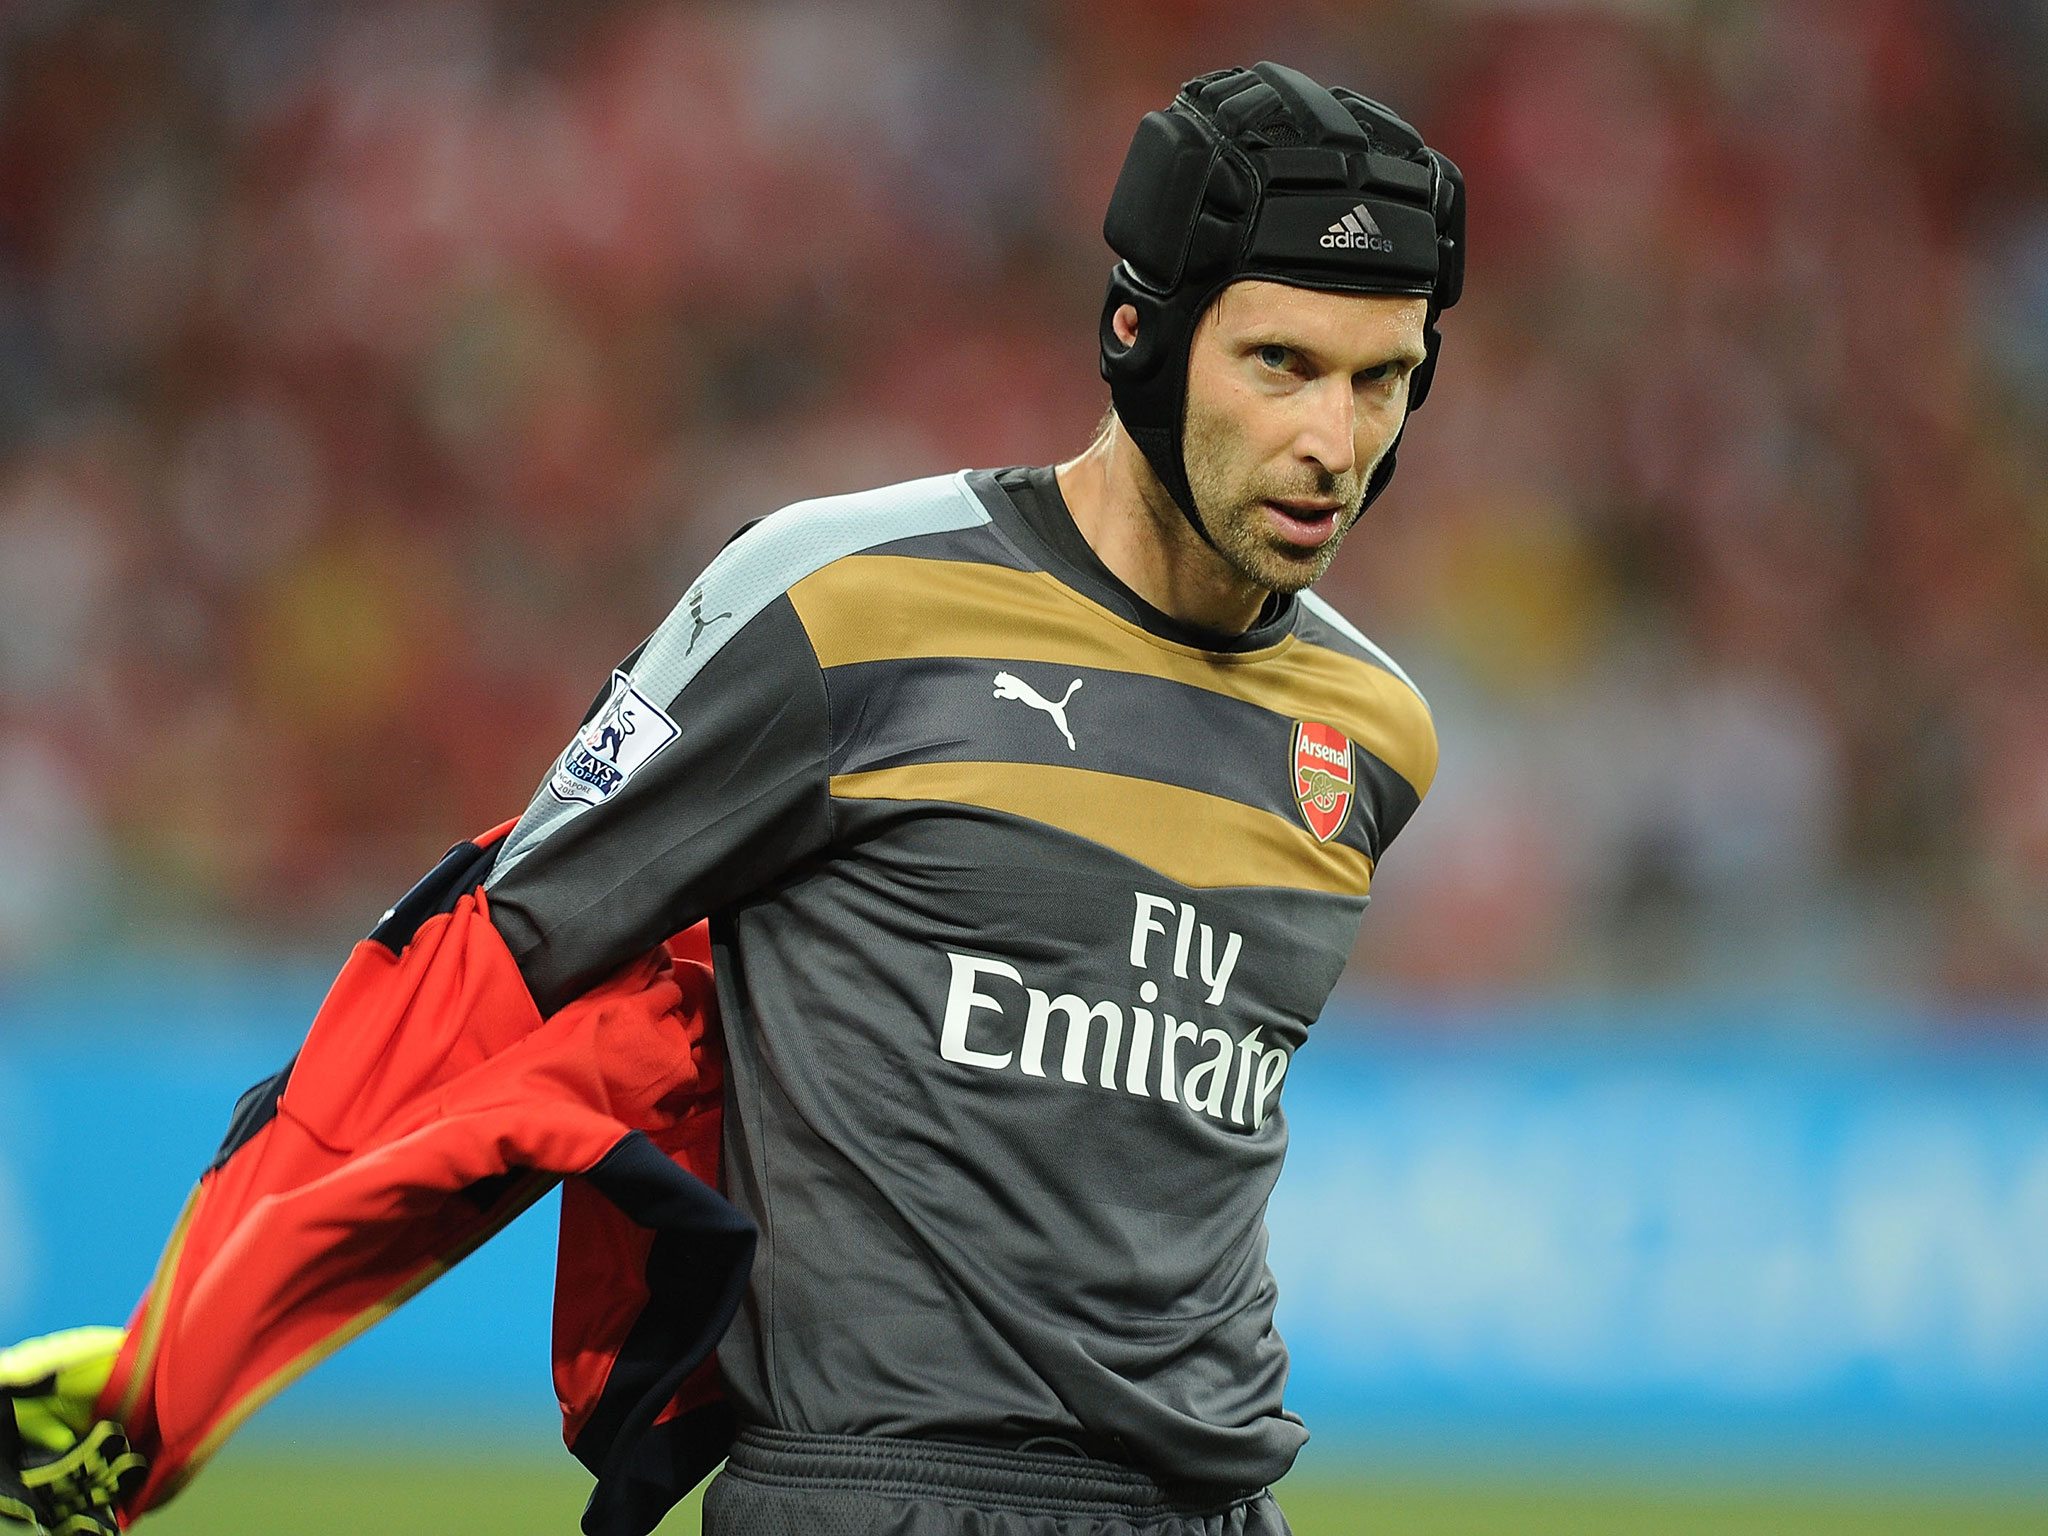 Cech-out: Arsenal's No1 goalkeeper was demoted to the bench for the Olympiakos defeat